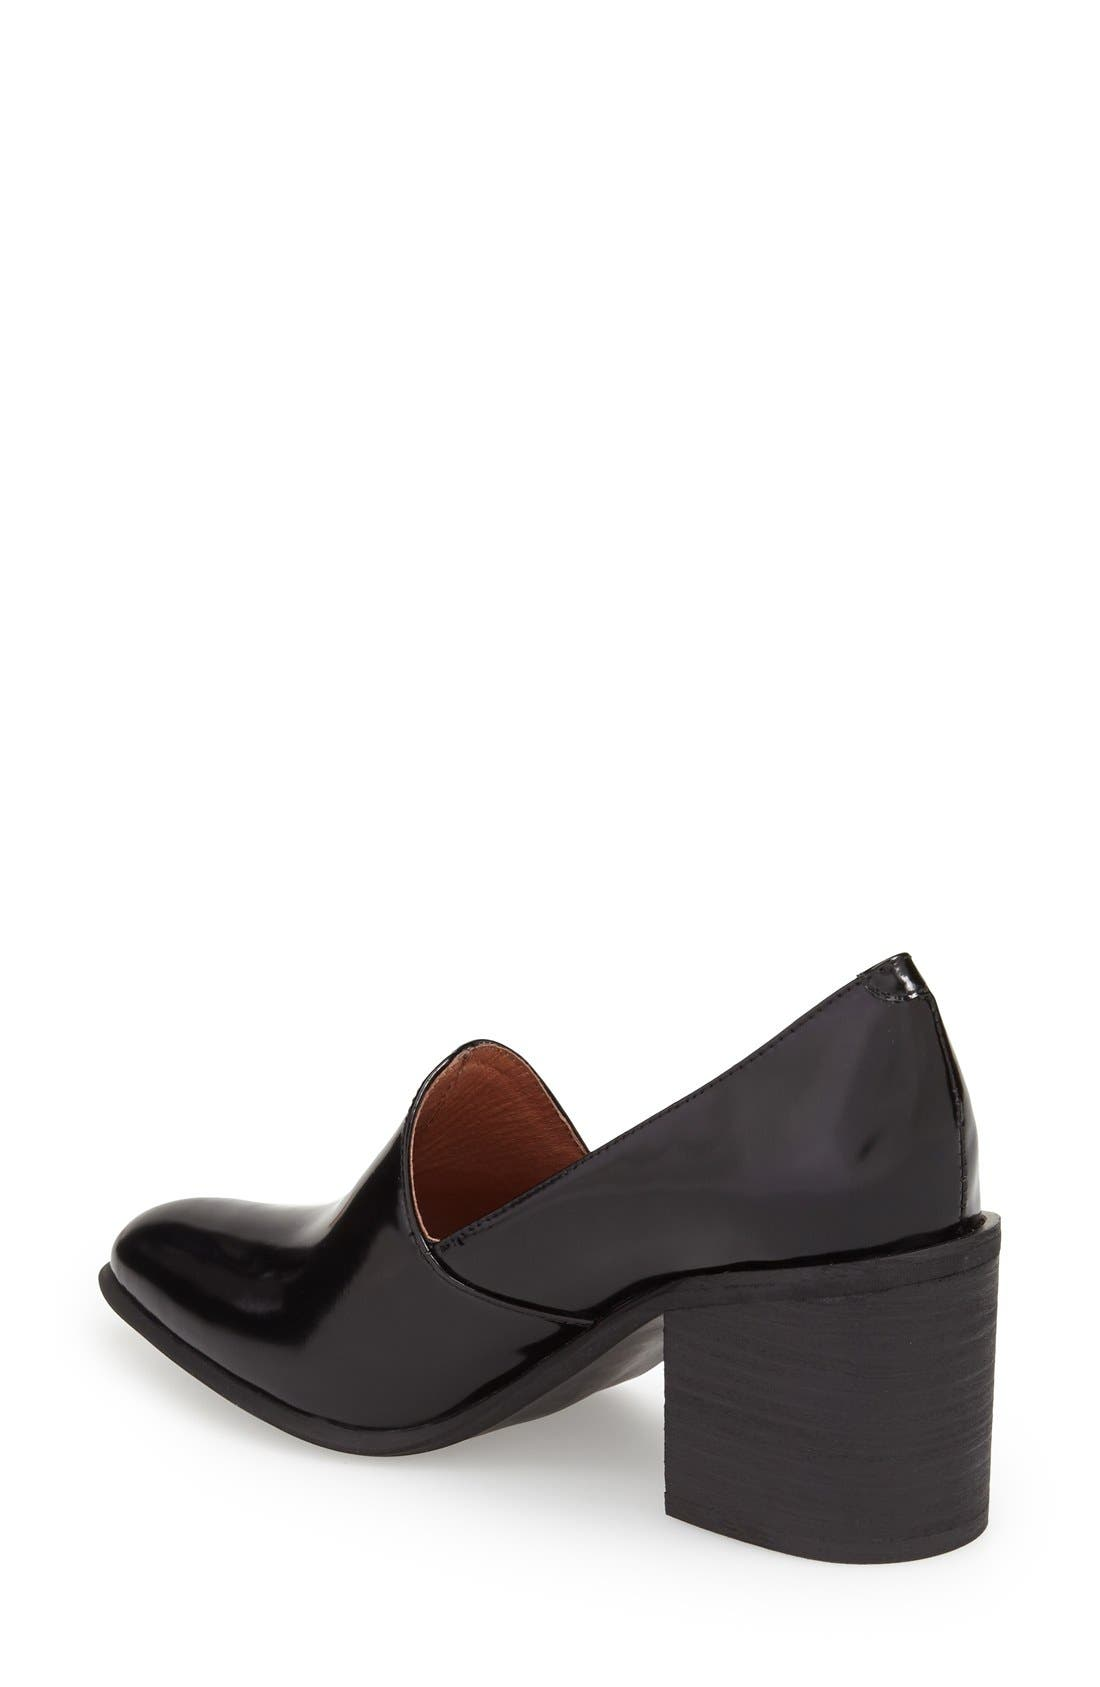 JEFFREY CAMPBELL,                             'Dante' Pointy Toe Loafer Pump,                             Alternate thumbnail 2, color,                             001